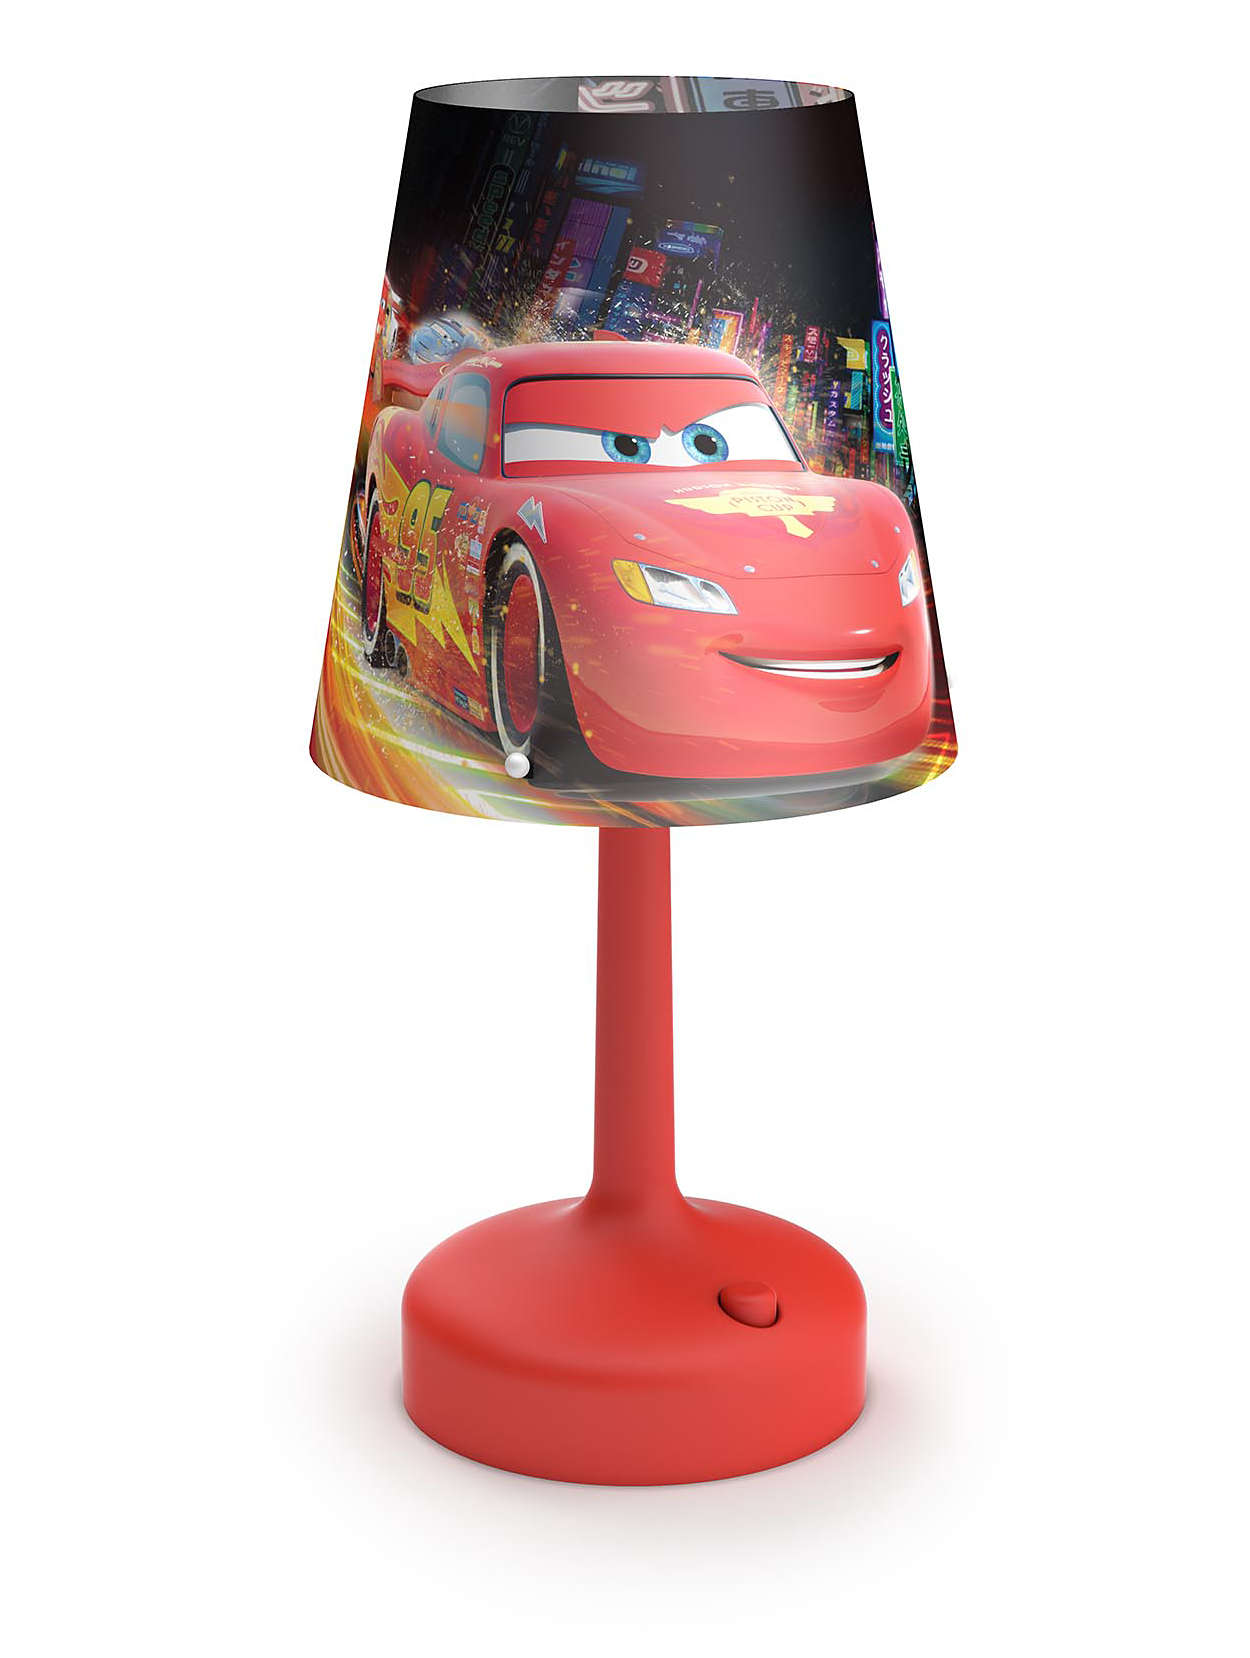 disney-cars-lamp-photo-13